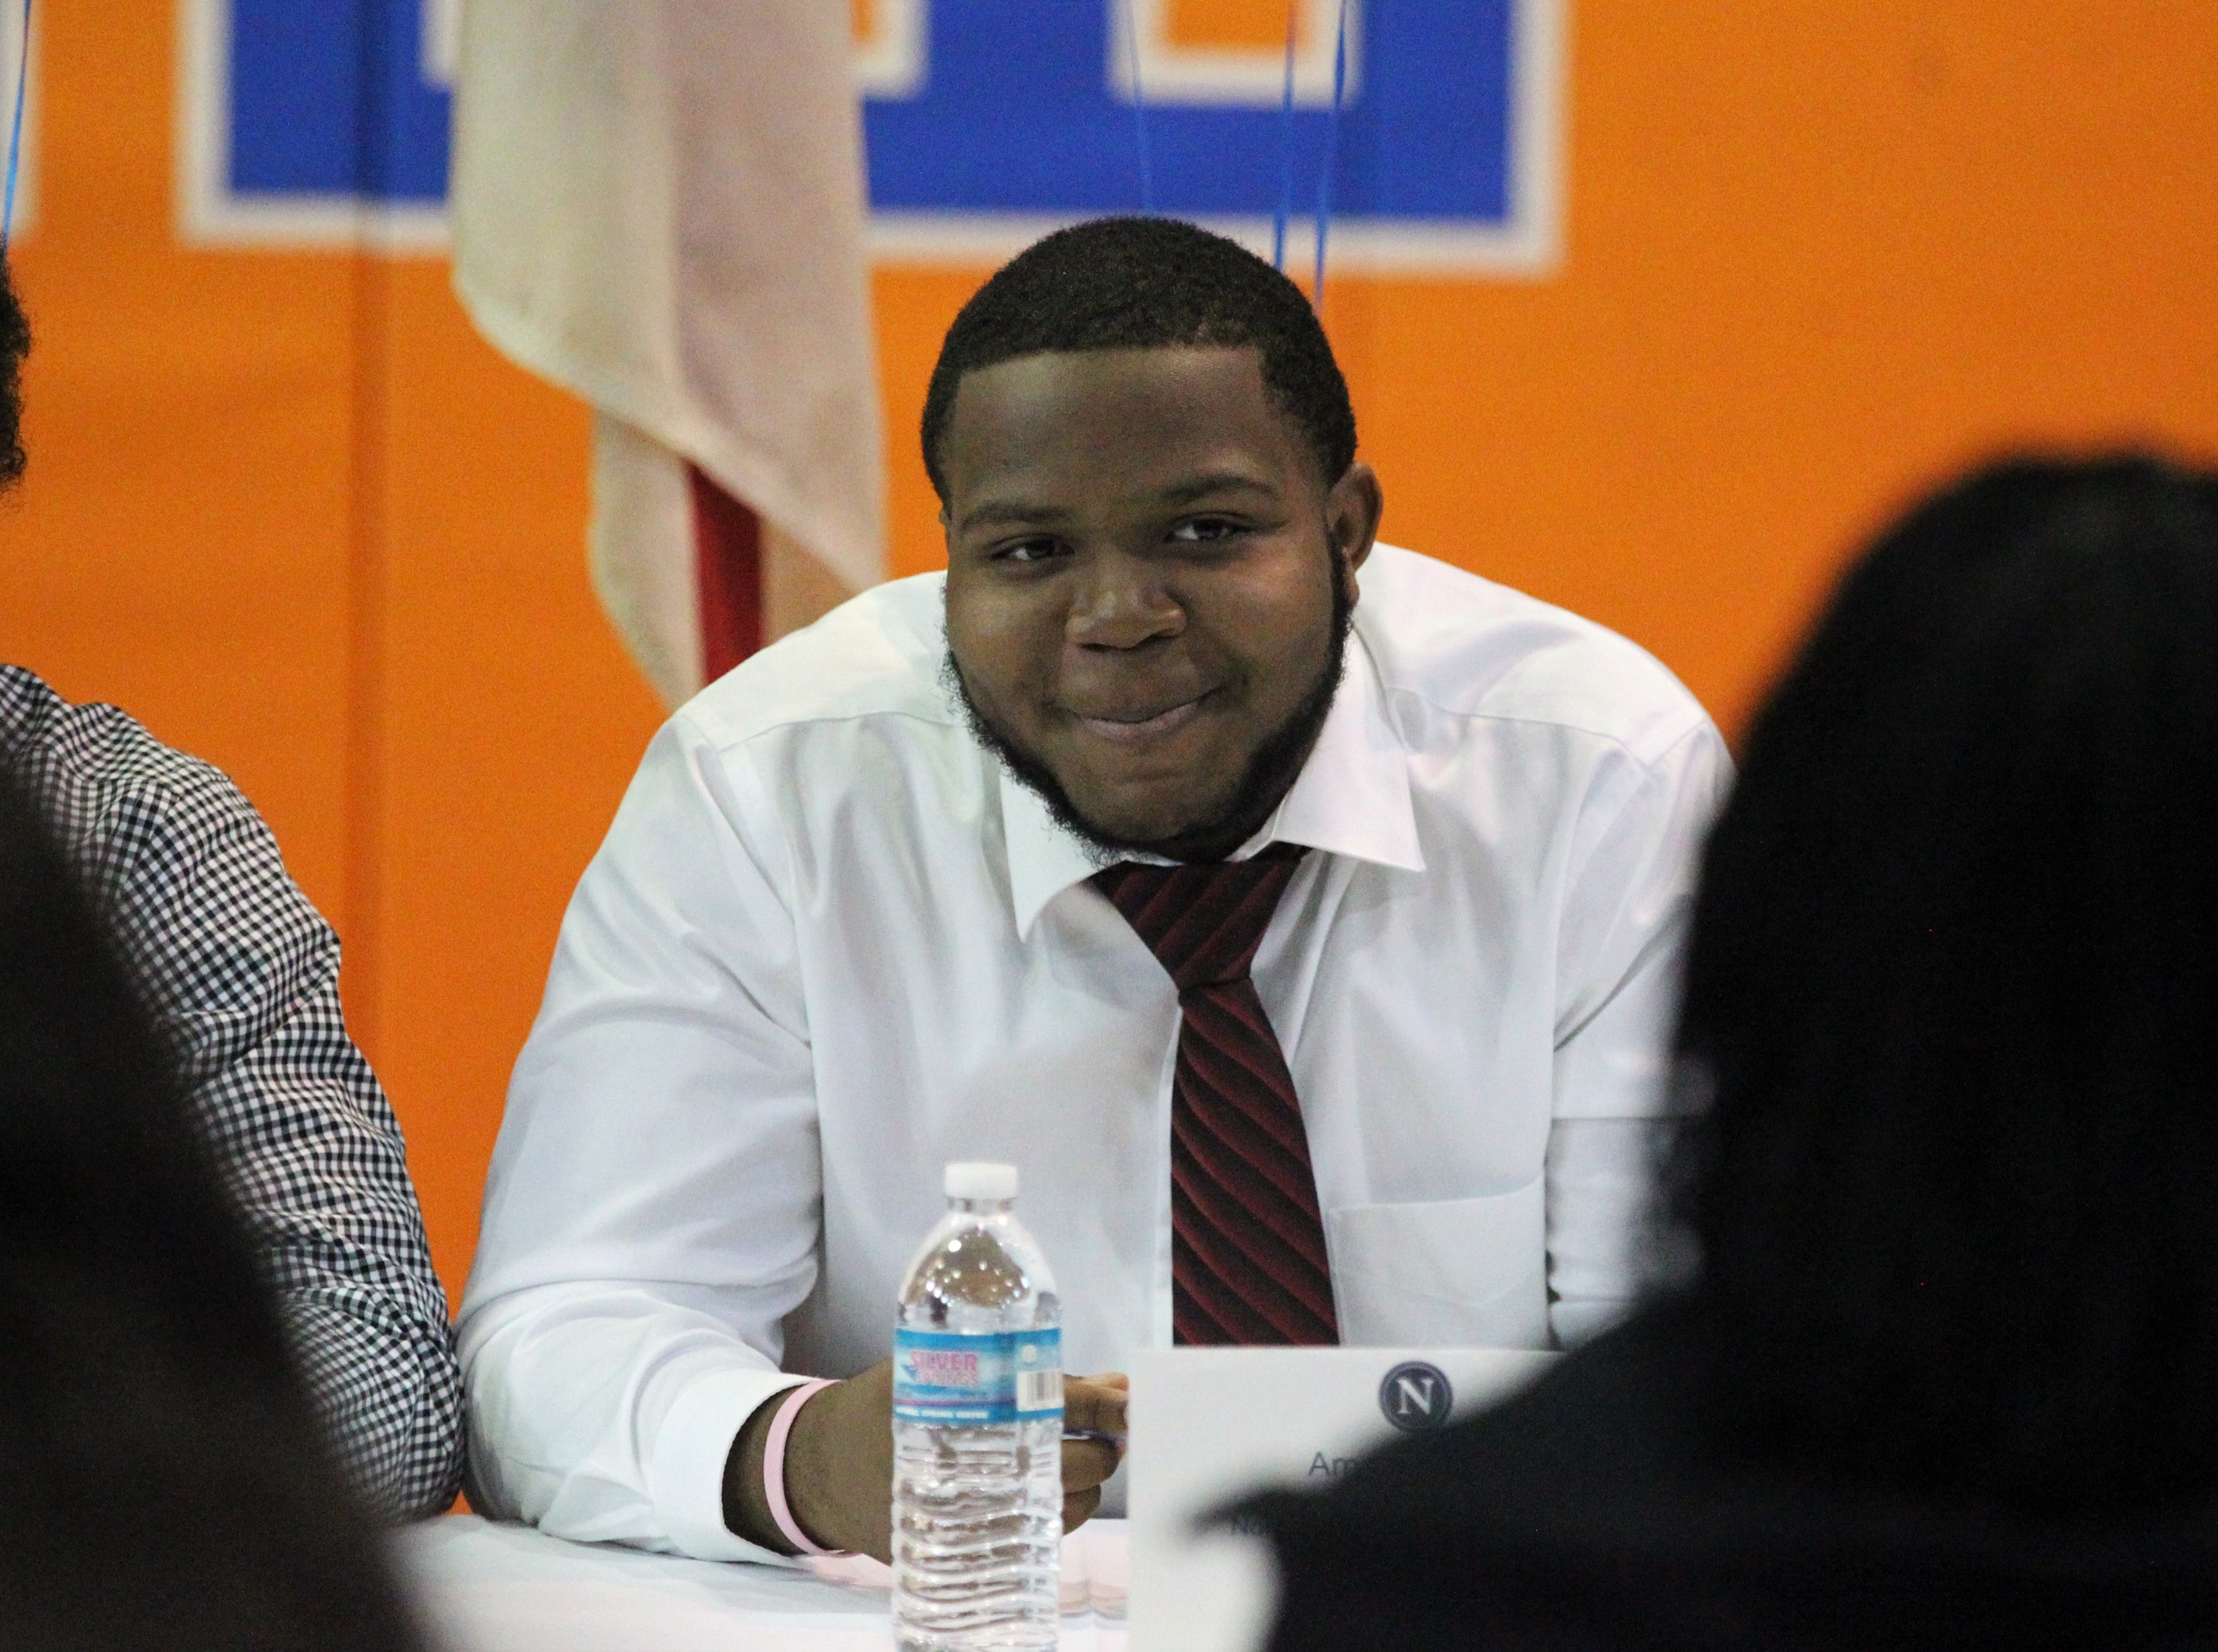 Jefferson County lineman Amantez Ford waits to sign with Northland College during Jefferson County's signing day ceremony on Feb. 13, 2019.